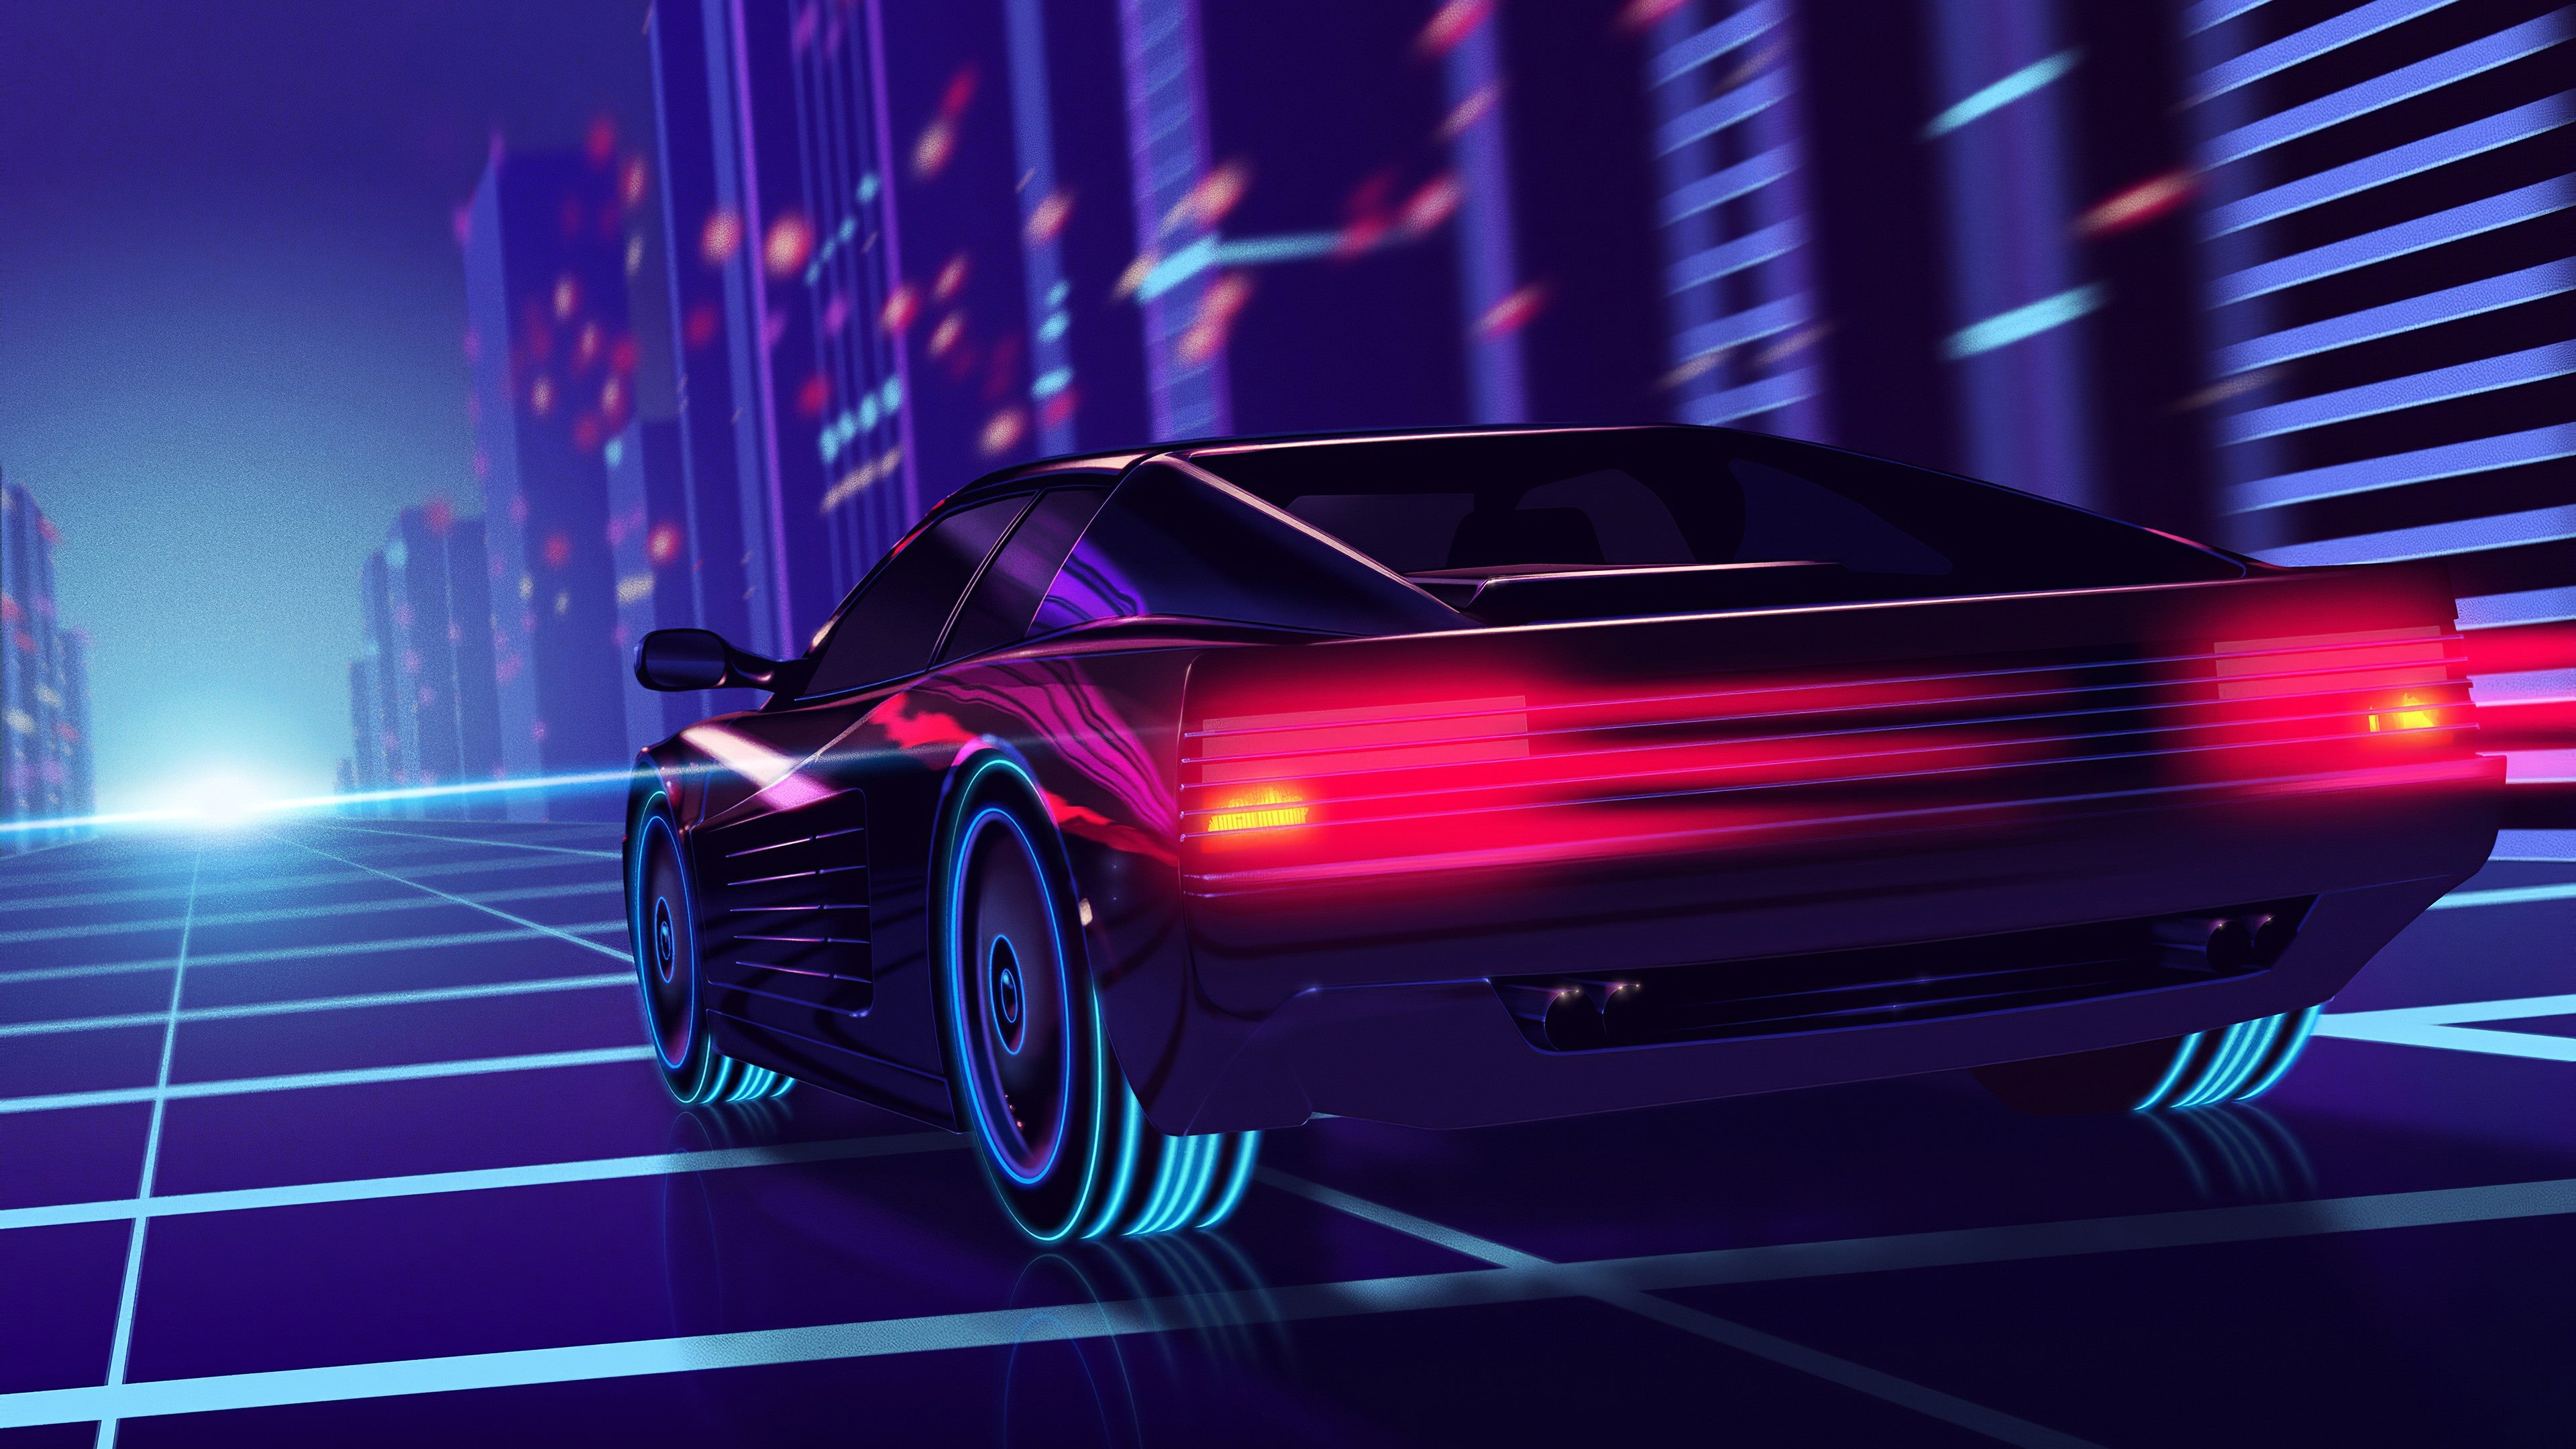 retrowave 4K wallpapers for your desktop or mobile screen and 3840x2160